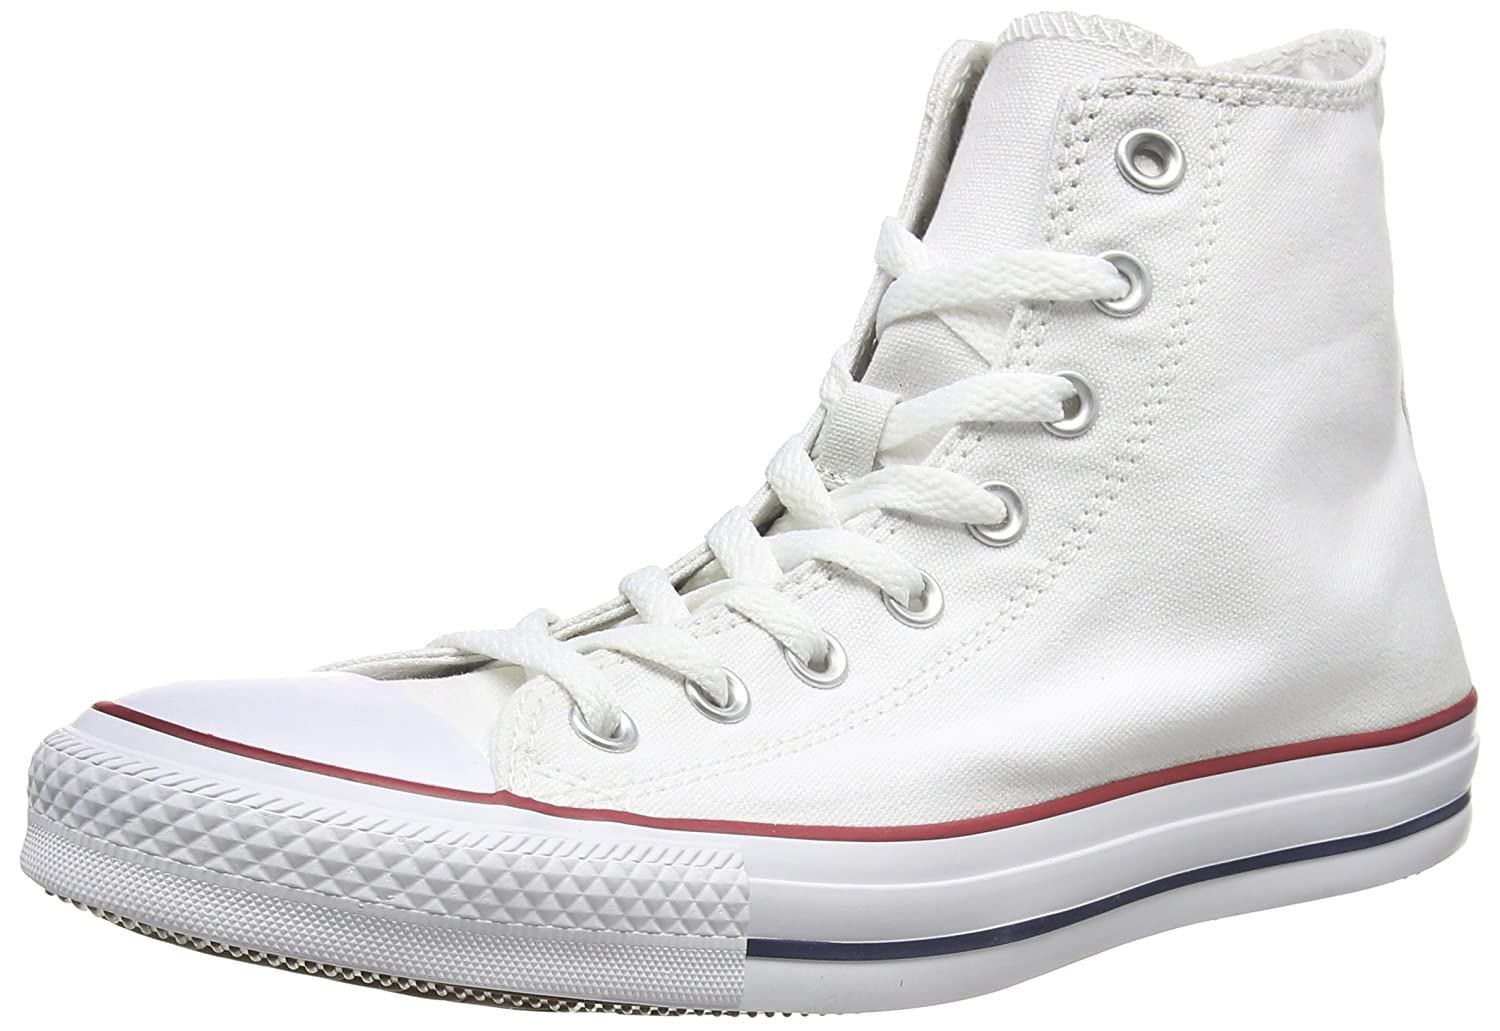 Converse Ctas mode B071NV768D Core - Hi, Baskets mode mixte adulte Blanc - Weiss afa7172 - therethere.space